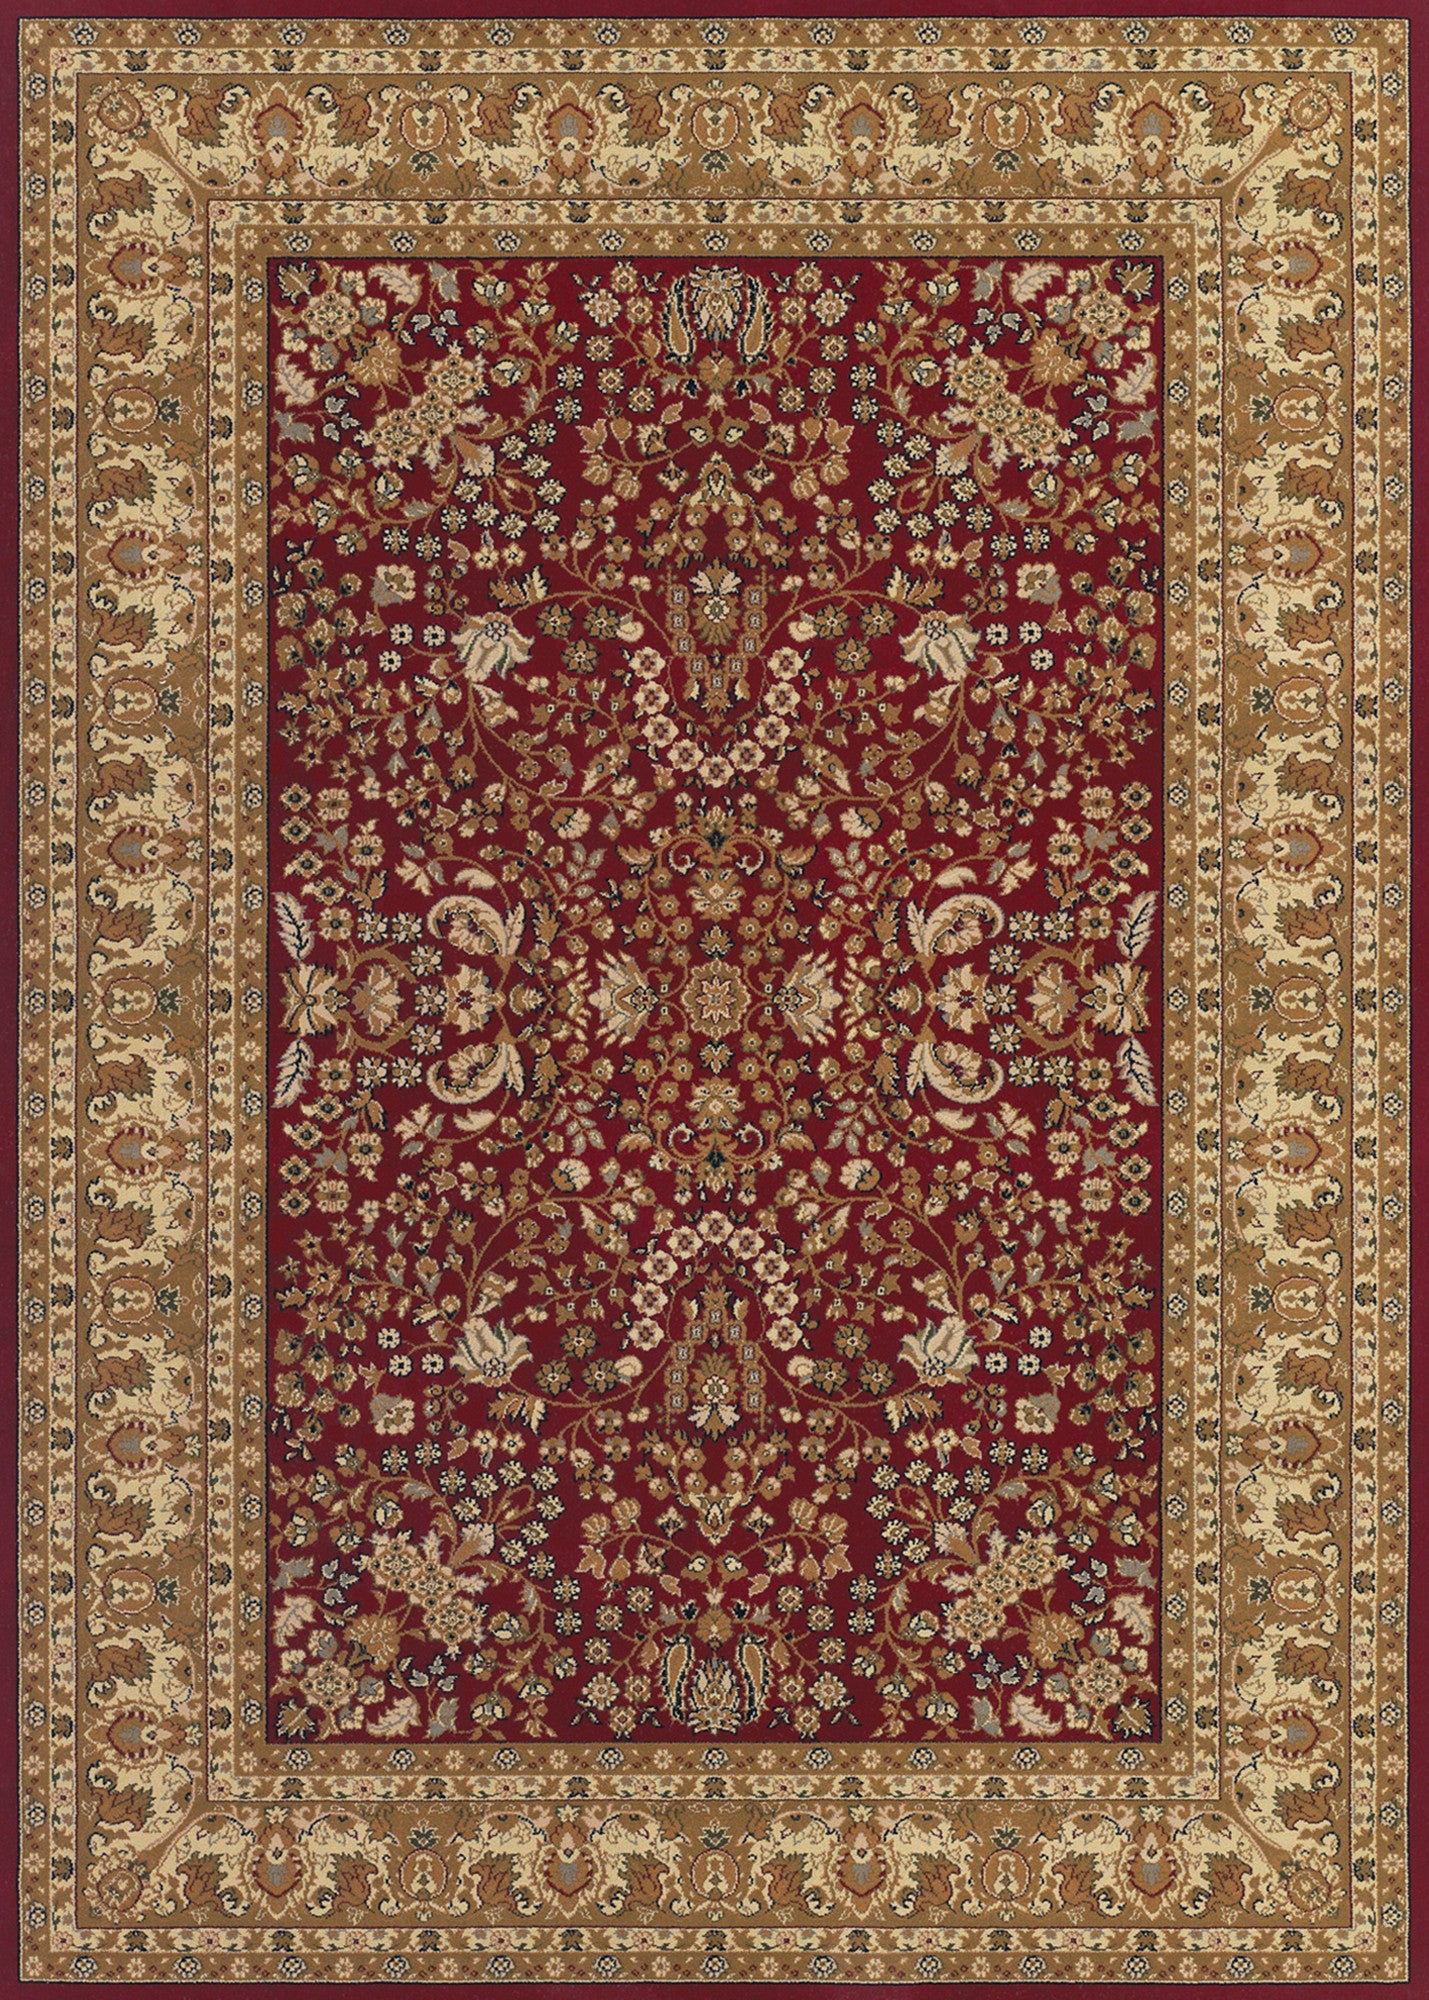 Couristan Izmir Floral Mashhad Red Area Rug Incredible Rugs And Decor